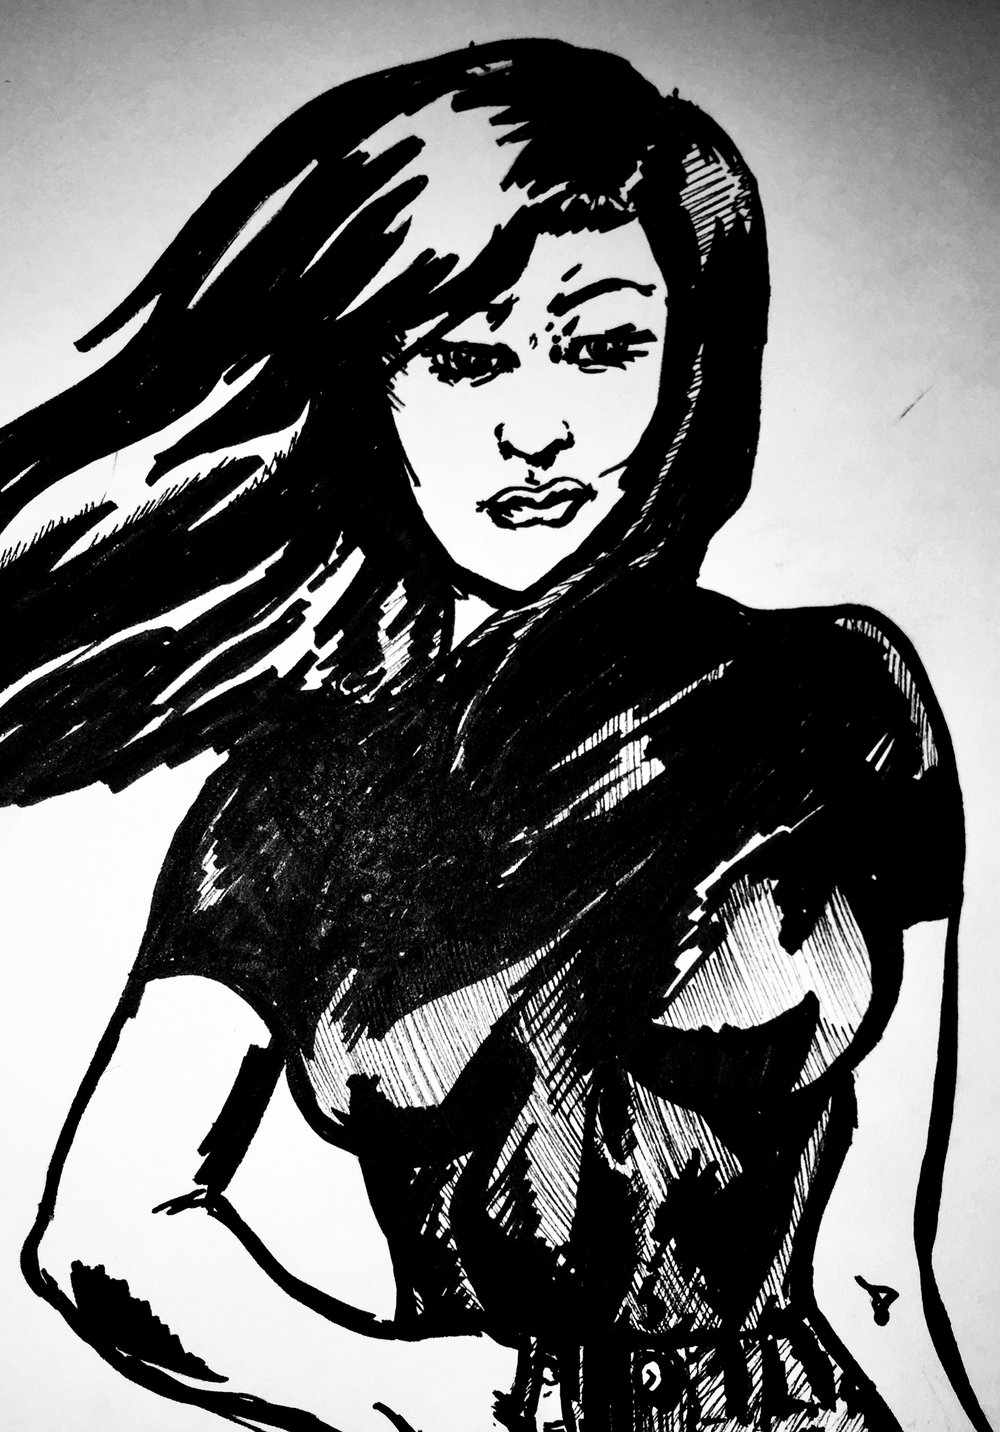 Filling out the post, this Talia al Ghul sketch is actually from a few months ago.